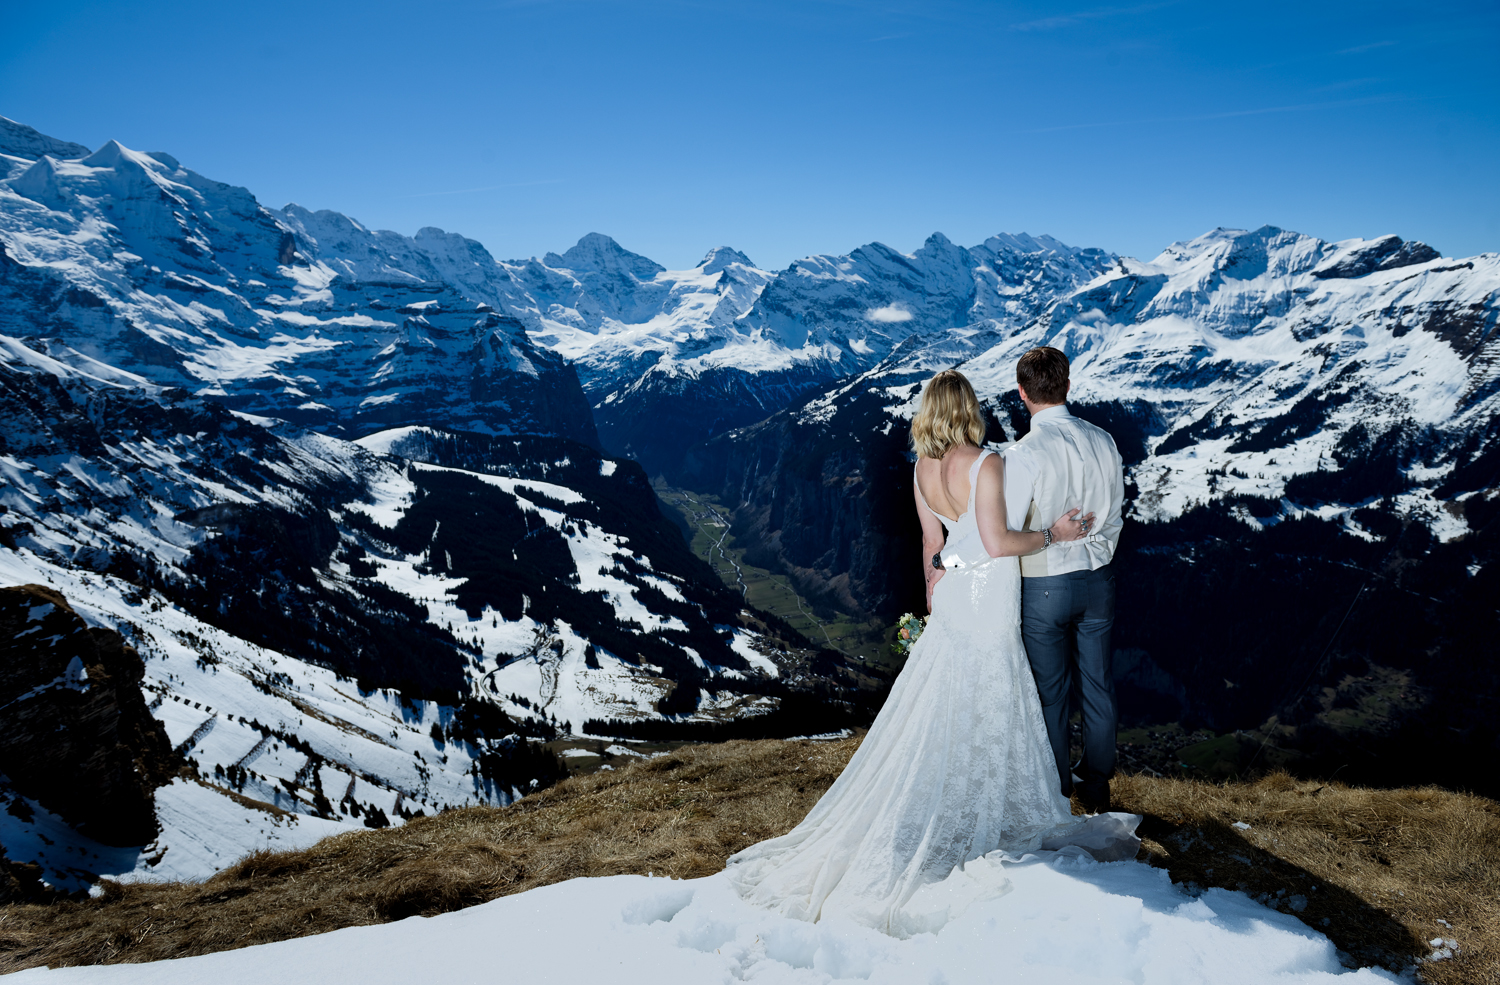 2017, 2018 , Bernese Oberland , Bride ,Bürgenstock , Castle ,Fall, Lauterbrunnen, Glacier , Grindelwald , Groom ,Gunten , Jungfraujoch , Jungfrauregion , Lake of Brienz , Lake of Lucerne , Lake of Thun ,Love ,Luzern , Mönch ,Mountains , Mürren , Nature ,Northface , Oberhofen , Outdoors ,Photography, Photosession , Quotes , Schilthorn ,Snow ,Spring , Summer ,Switzerland , Unique ,Wedding ,Wengen ,Winter